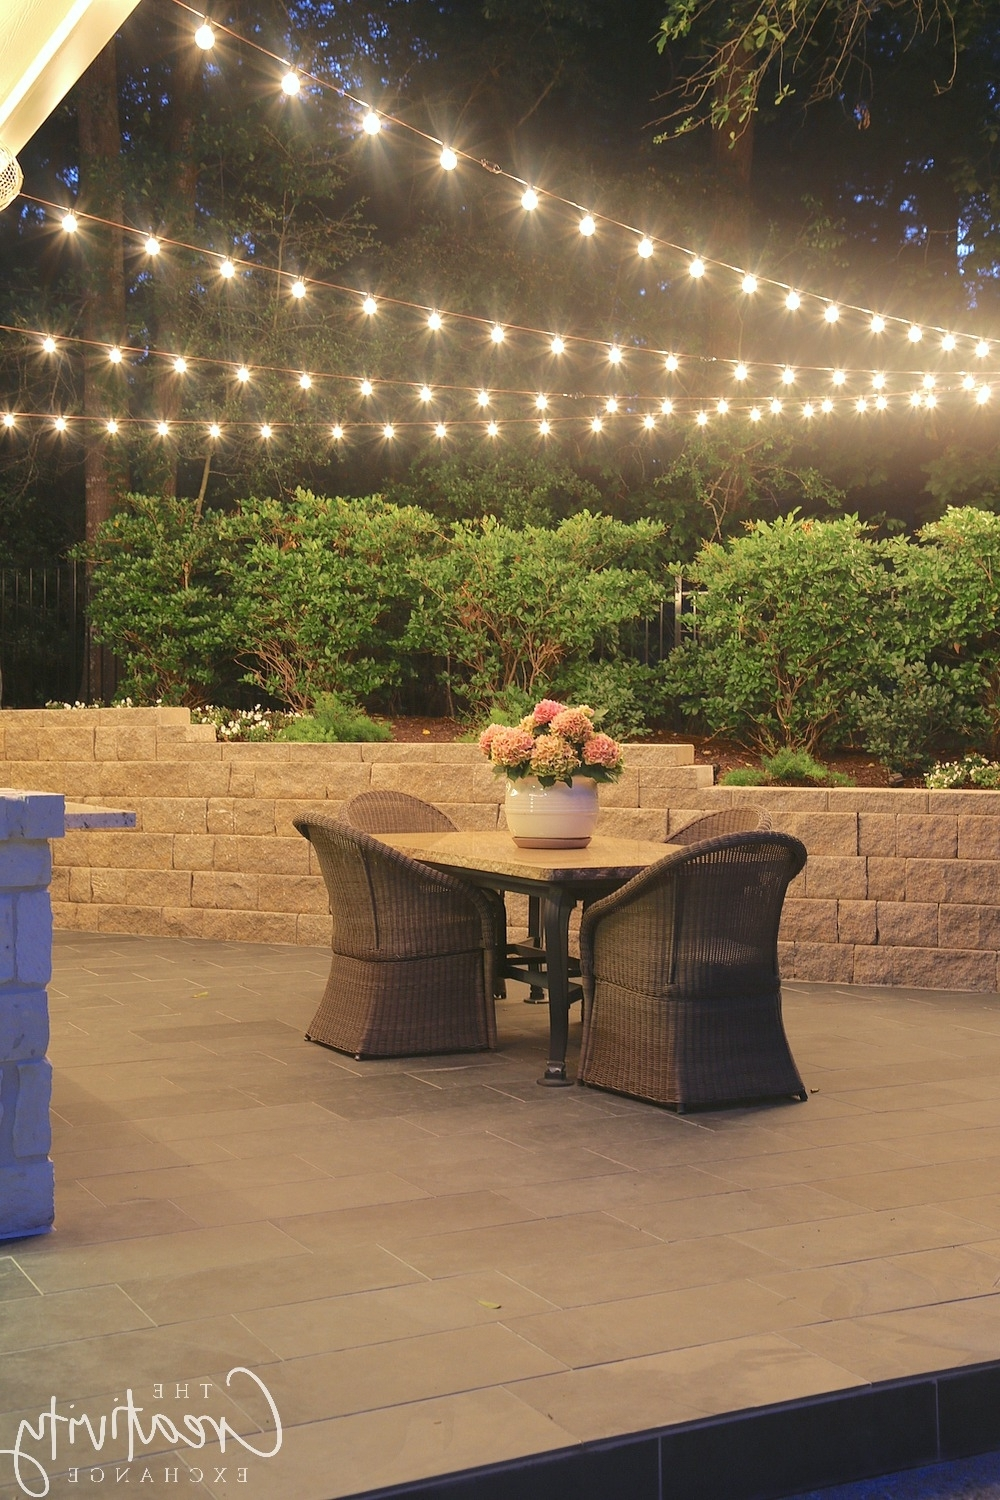 Most Popular Quick Tips For Hanging Outdoor String Lights Intended For Outdoor String Lanterns (View 8 of 20)